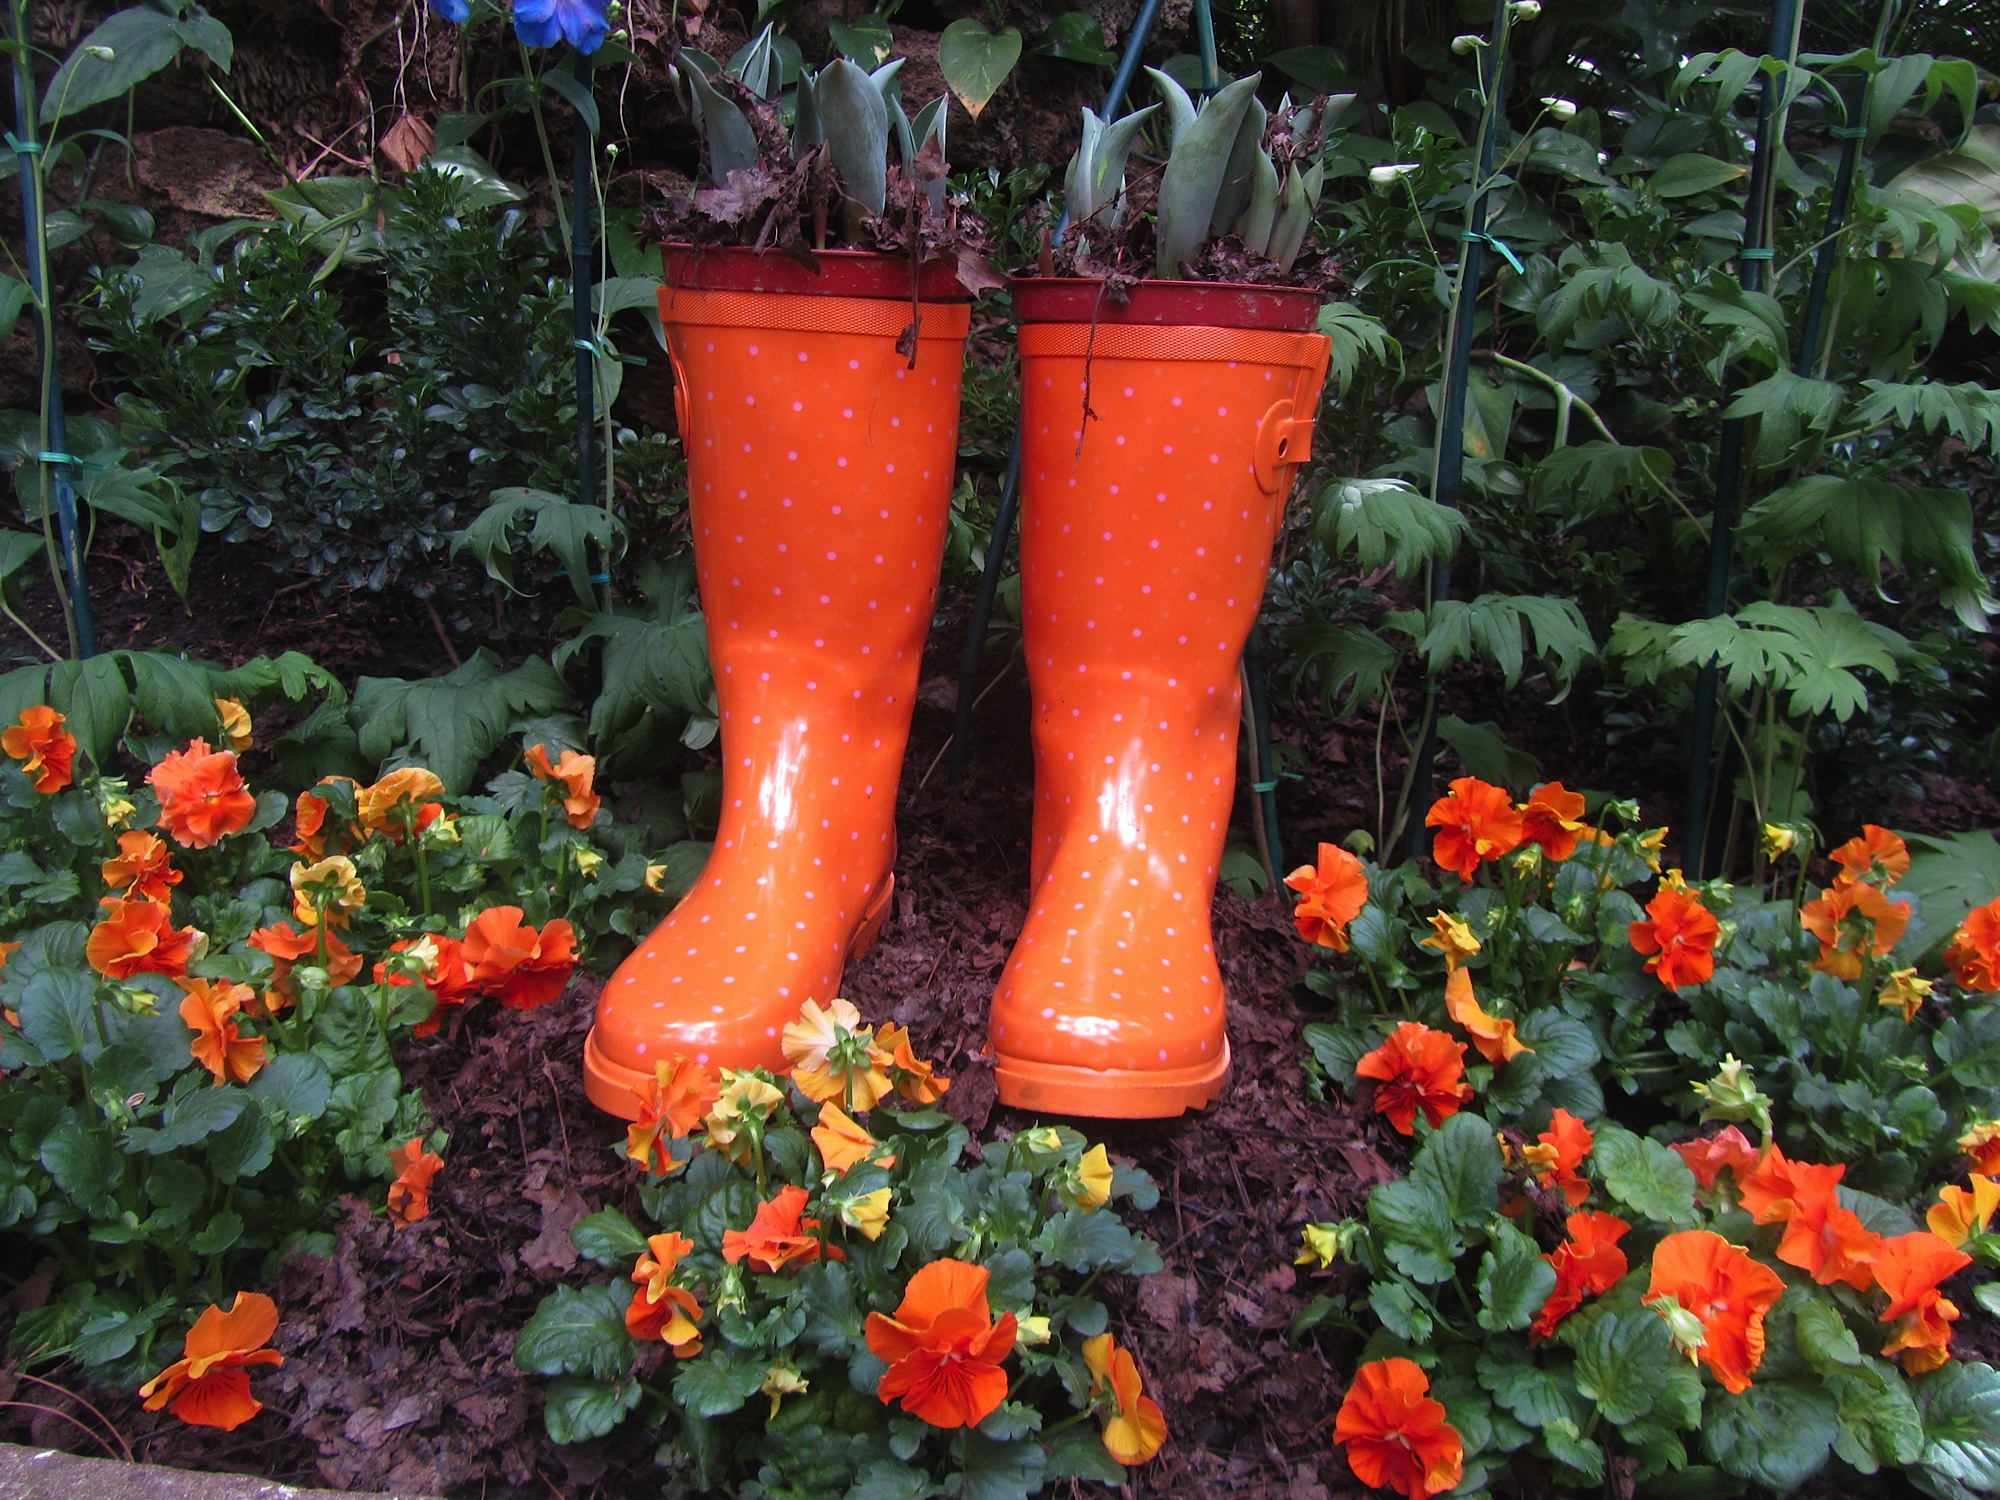 Phipps conservatory ruth e hendricks photography orange boots dhlflorist Choice Image